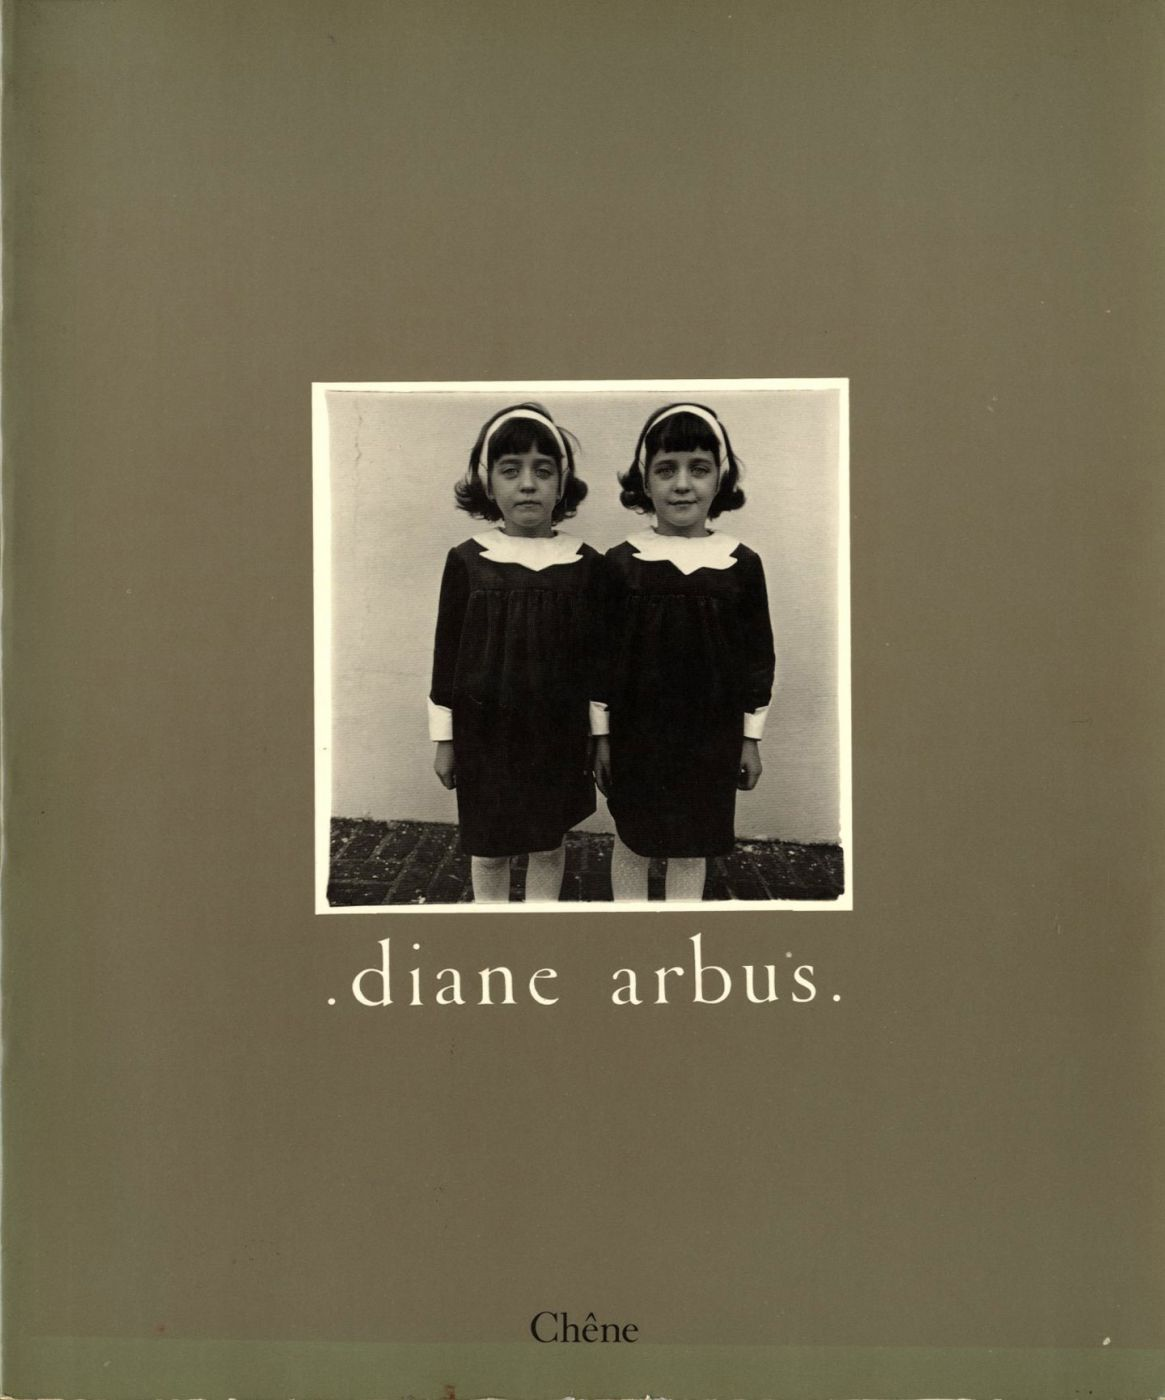 Diane Arbus (French Edition)